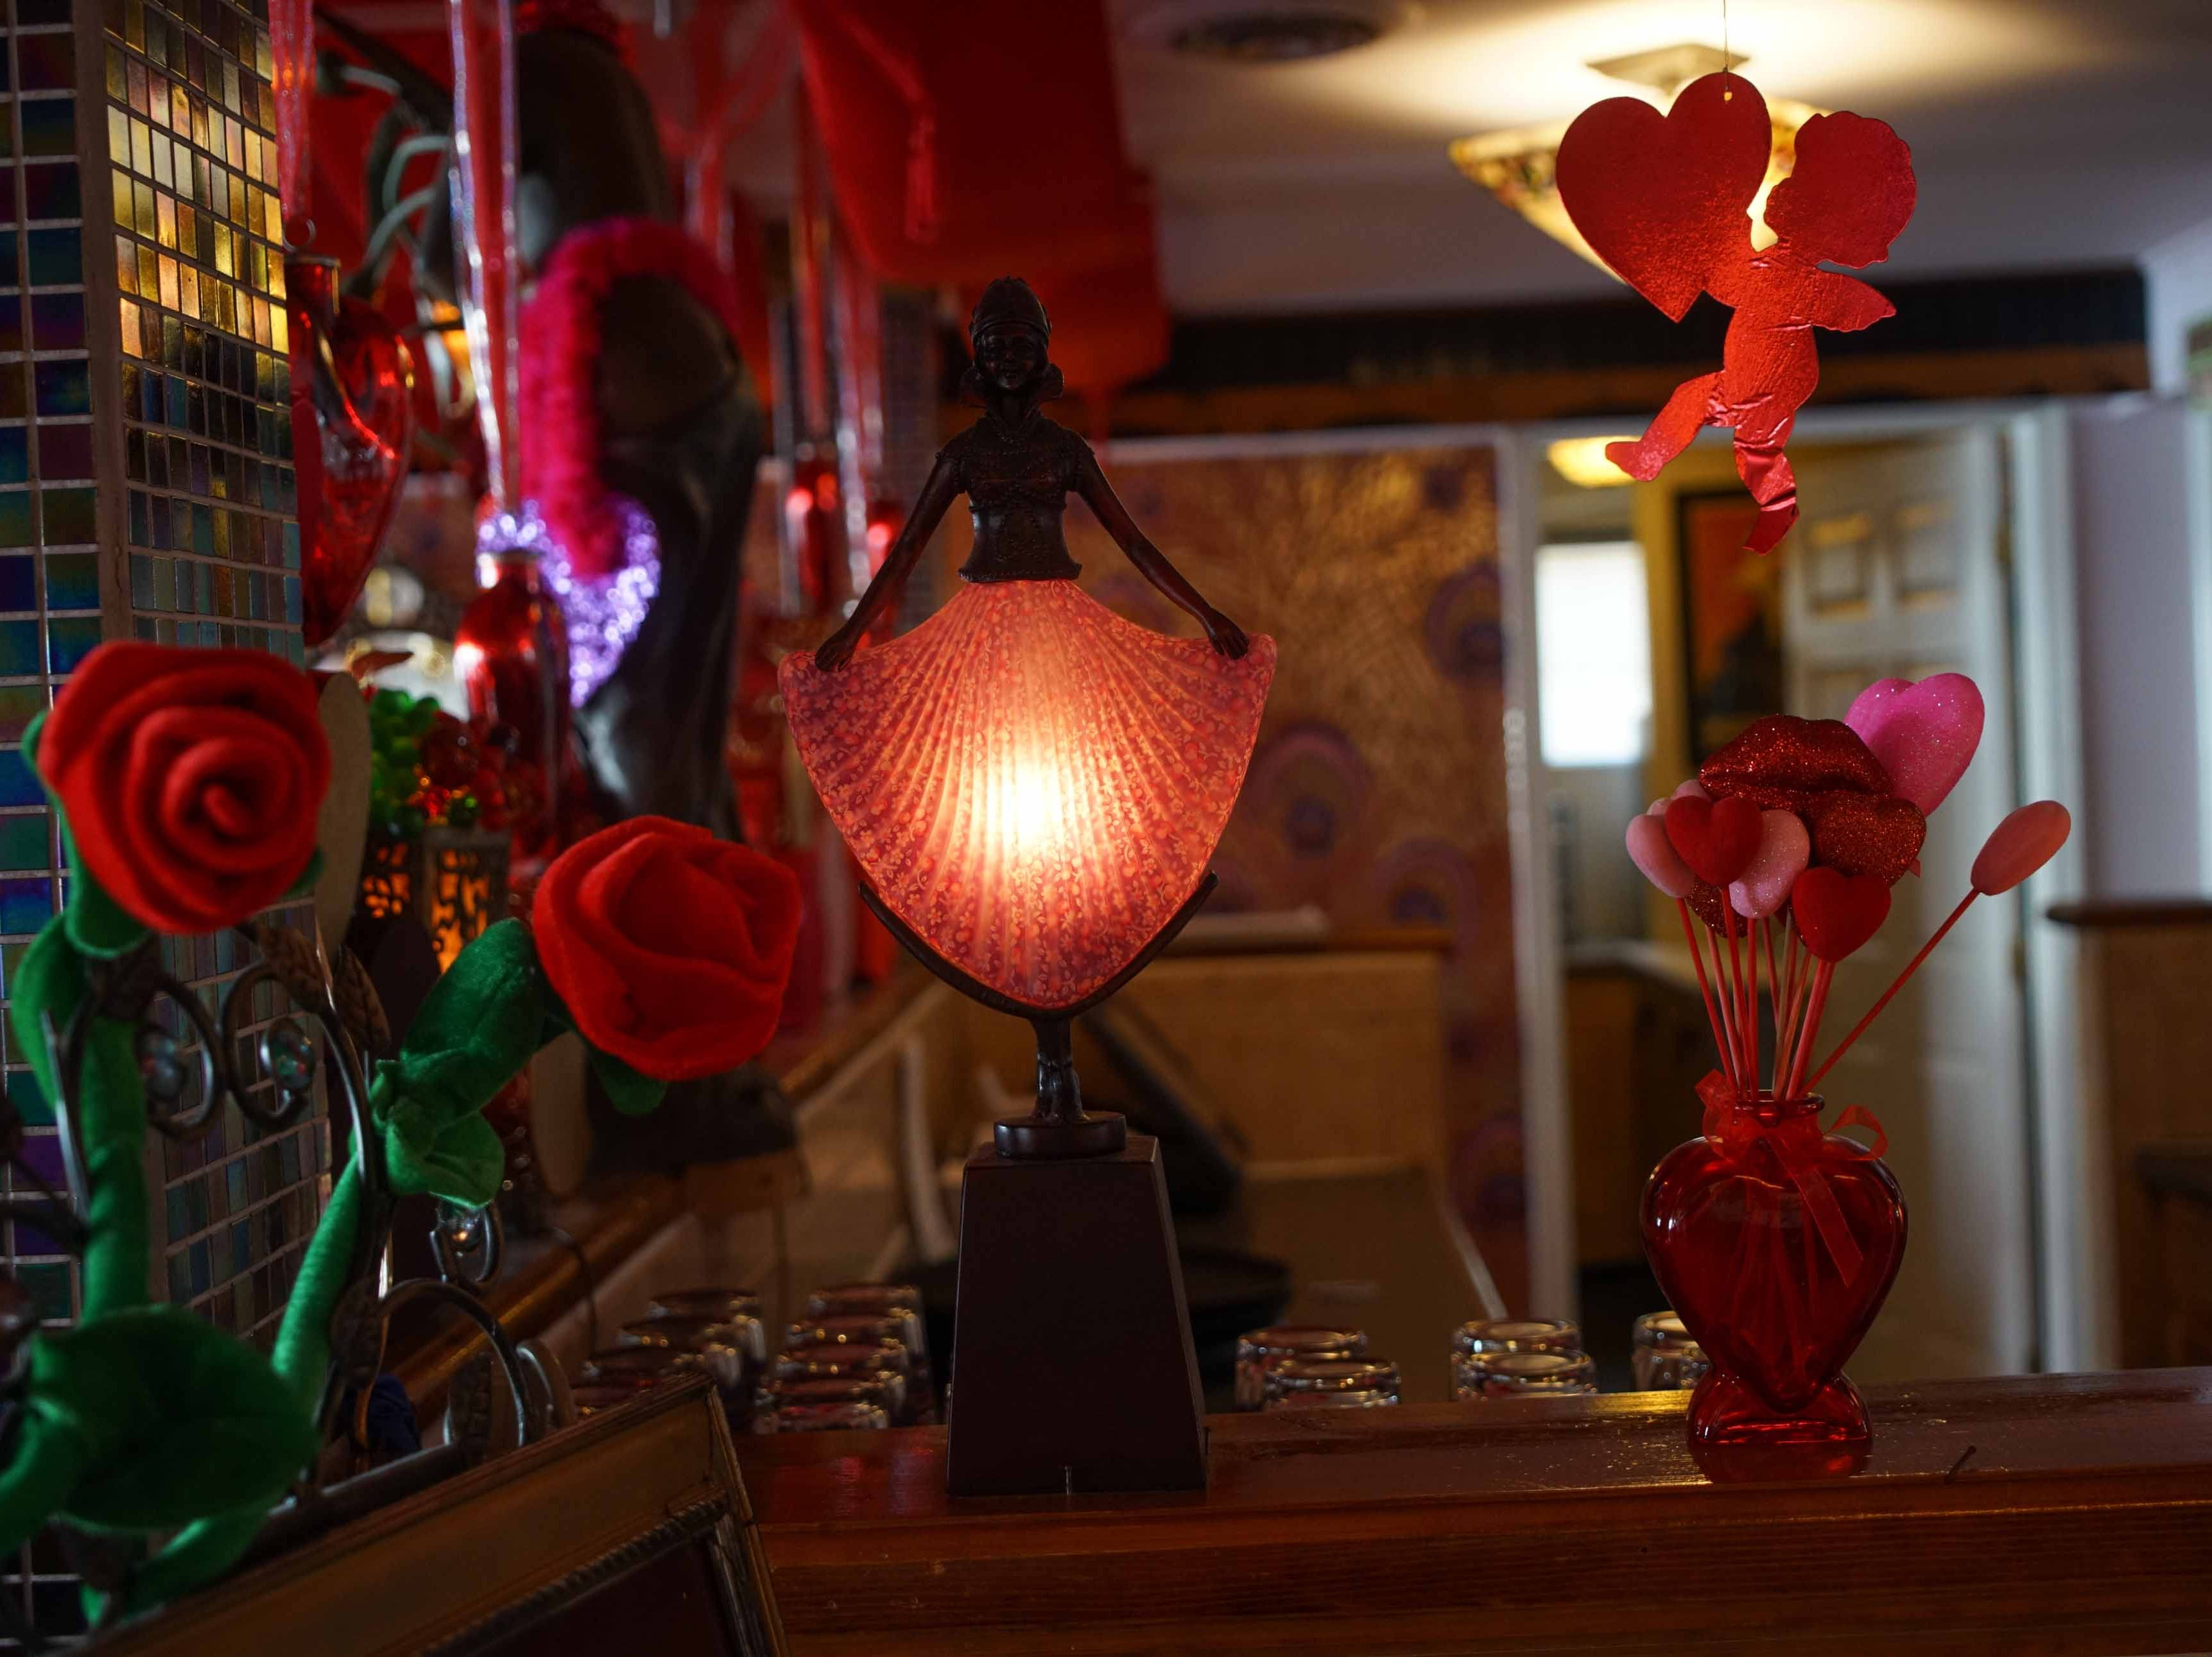 Serendipity Restaurant in Oak Orchard decks out the restaurant for Valentine's Day.